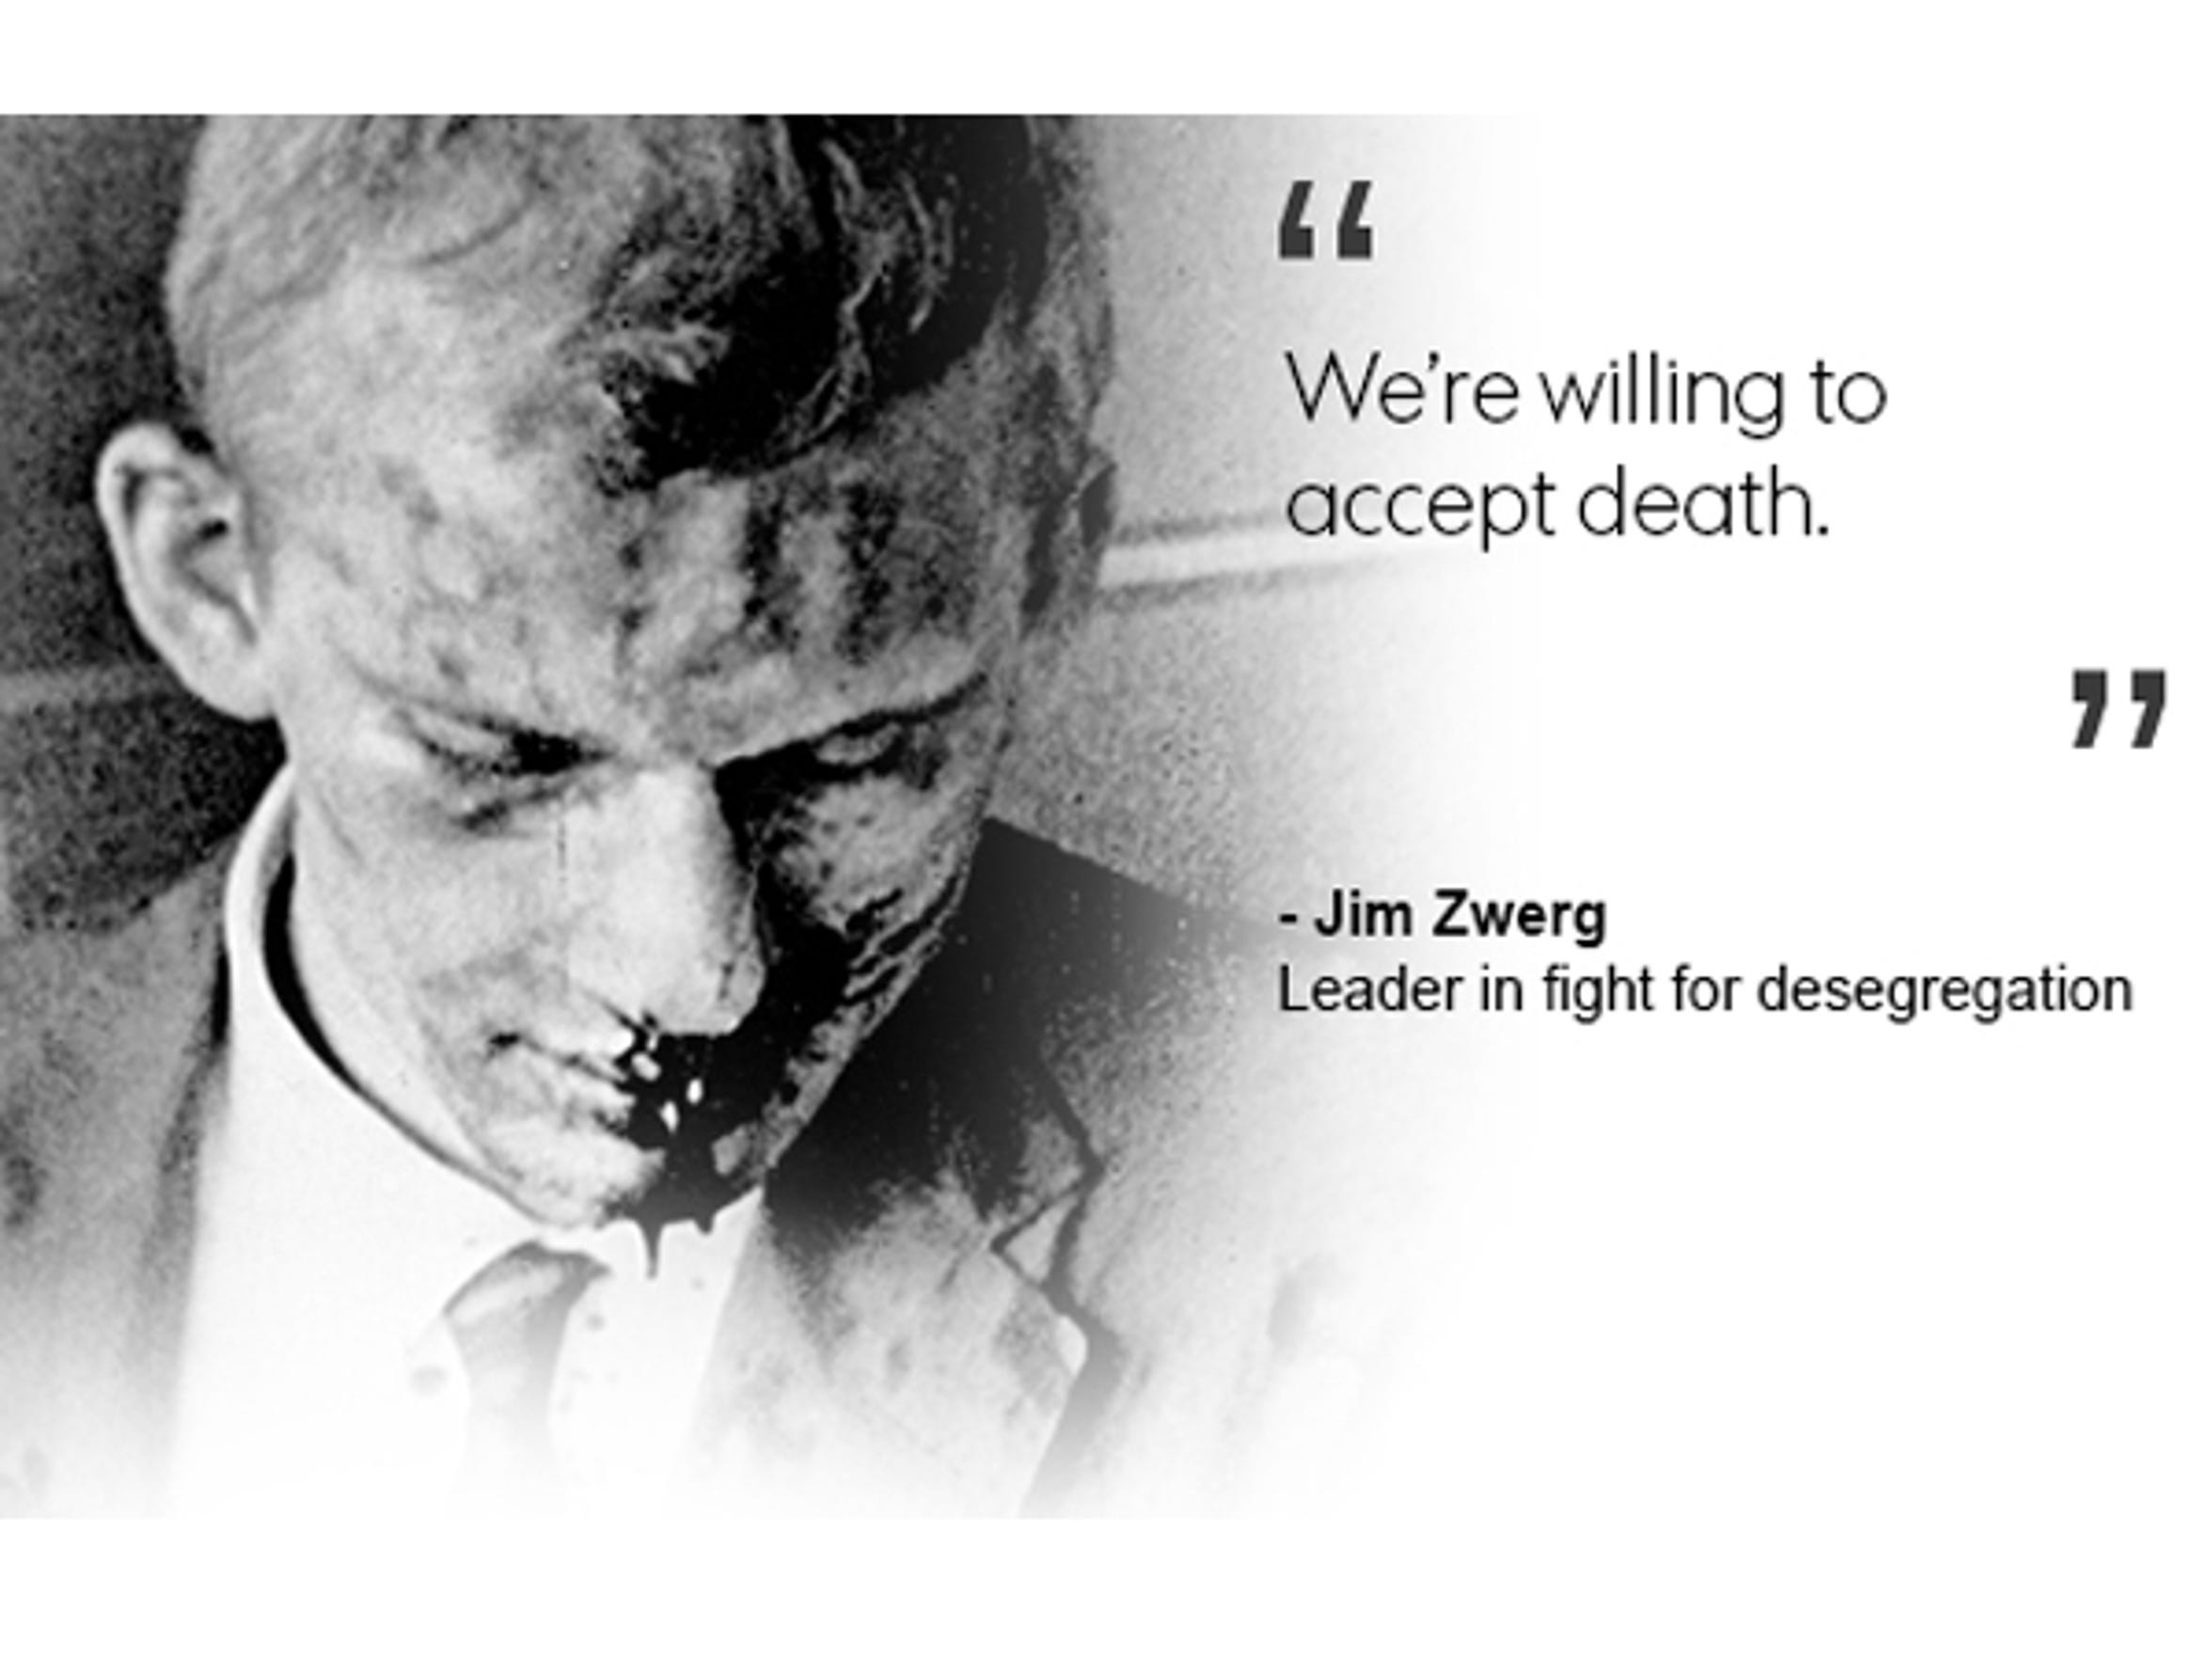 Jim Zwerg, leader in fight for desegregation